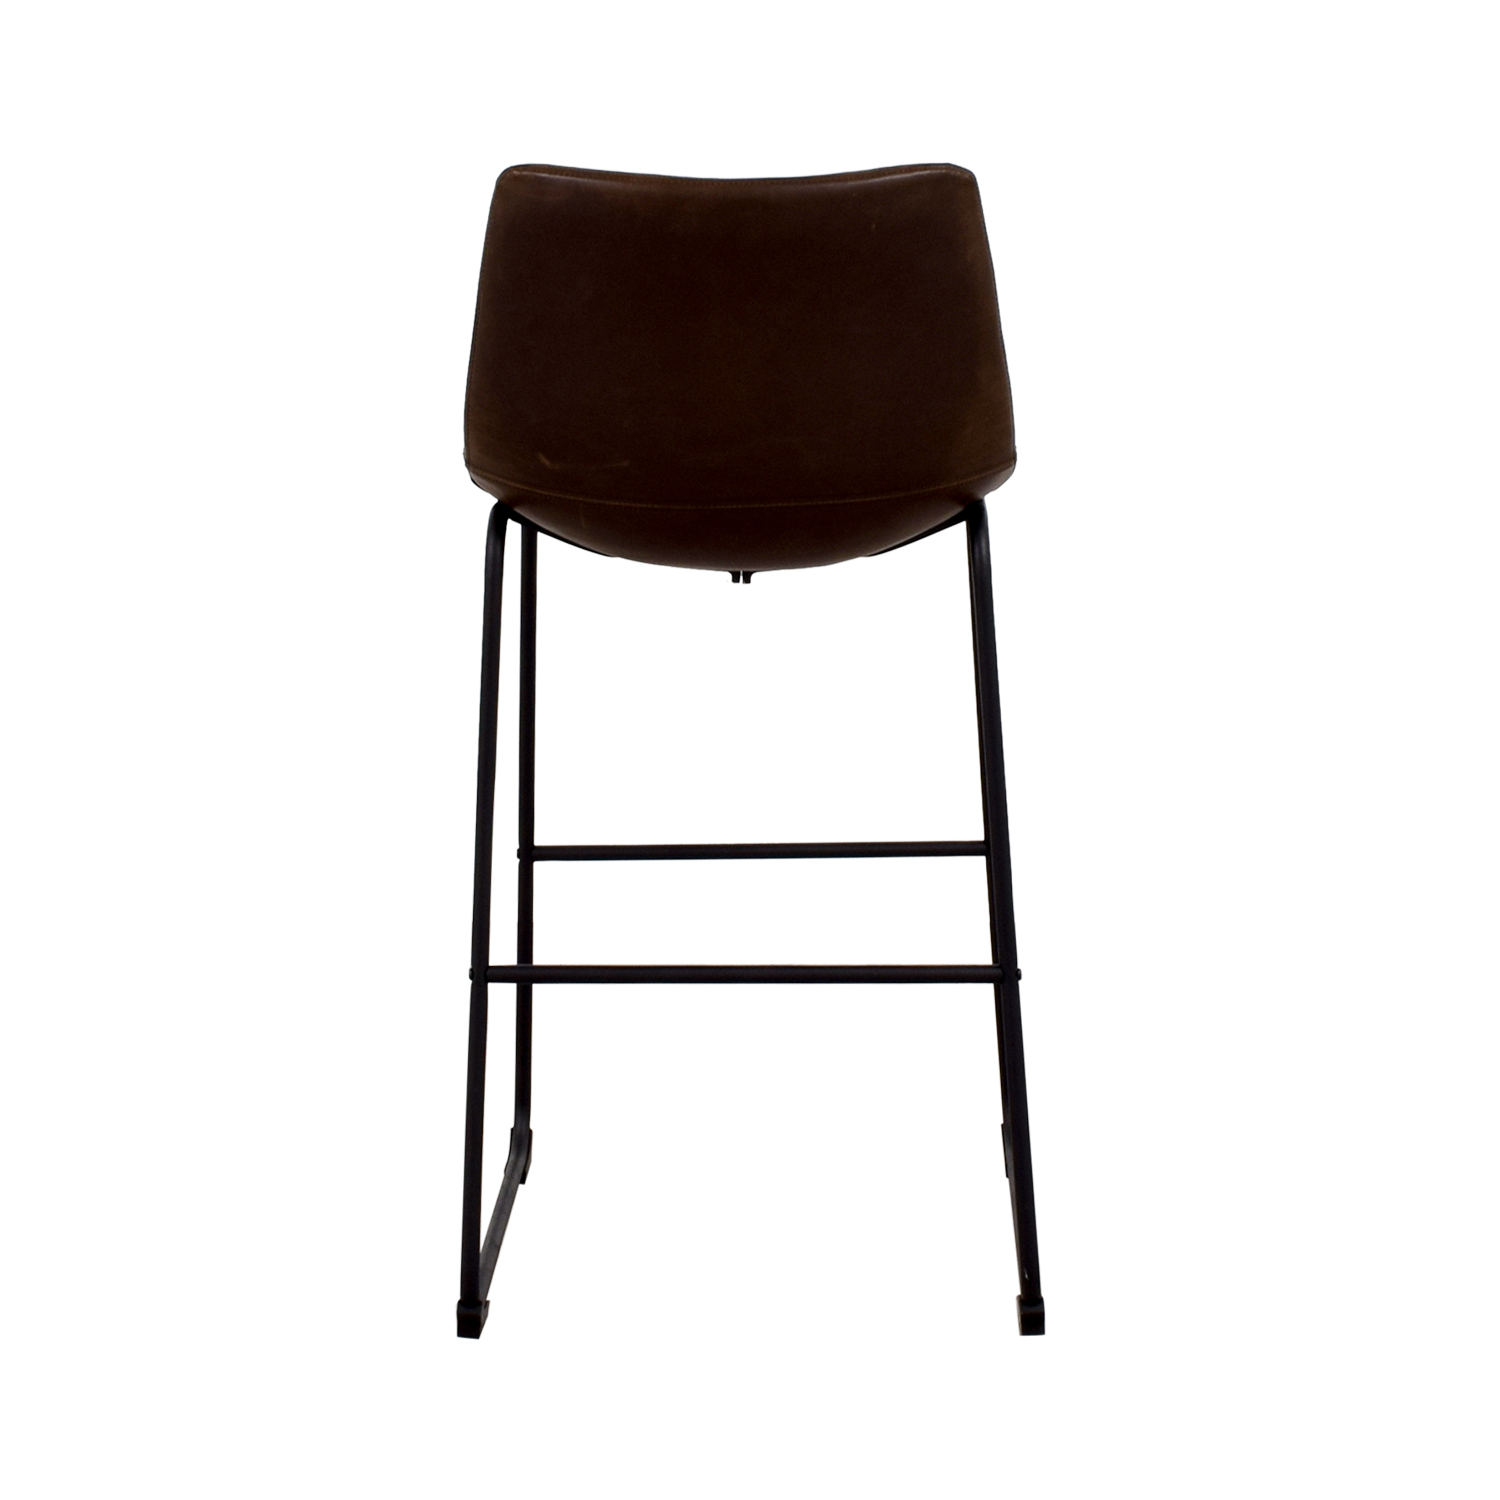 Coaster Coaster Retro Brown Leatherette Counter Height Chair dimensions